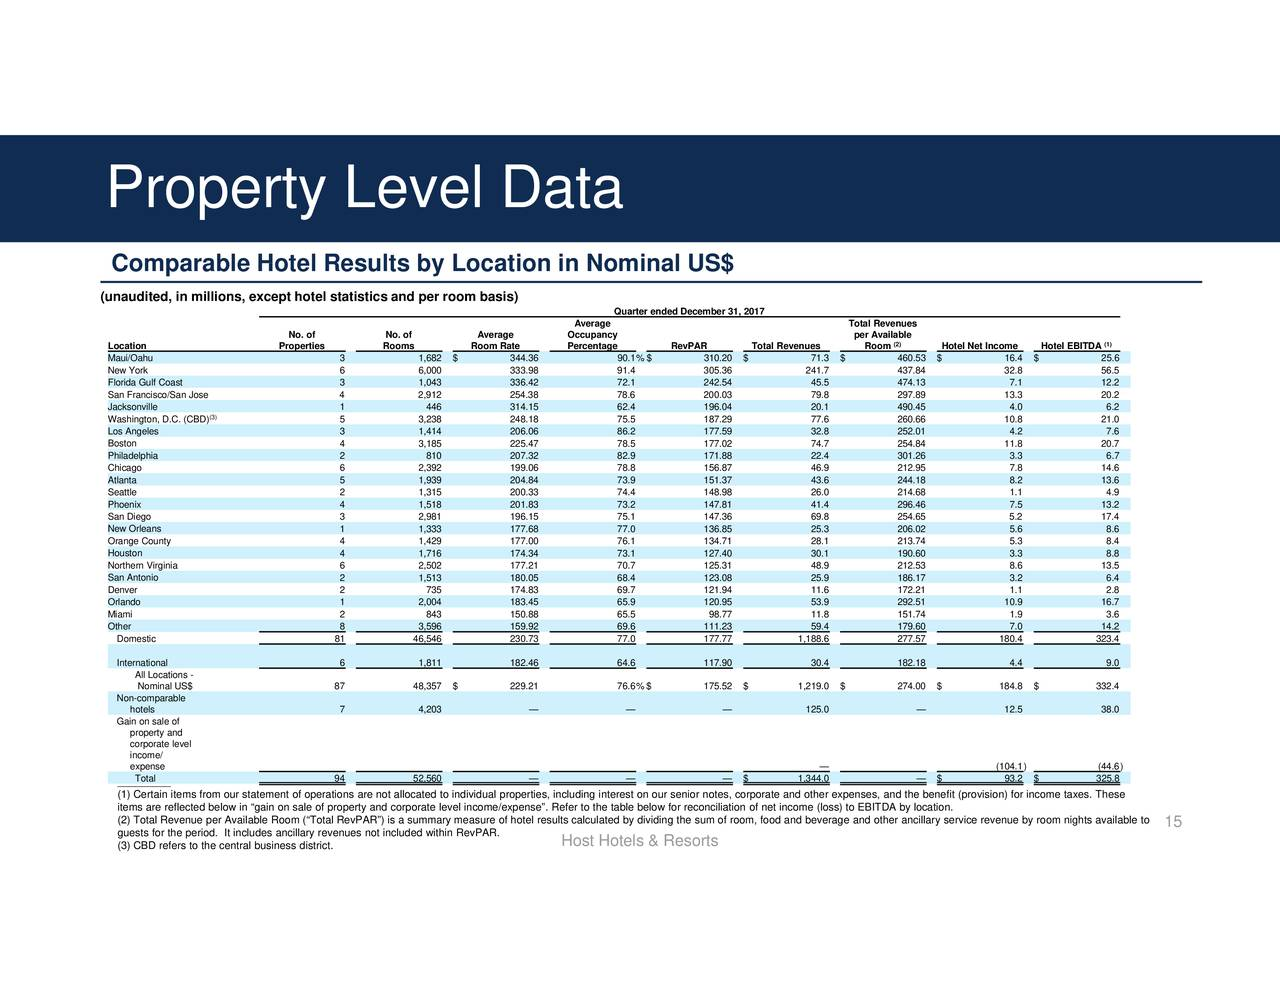 Is Property Taxes Included In Ebitda